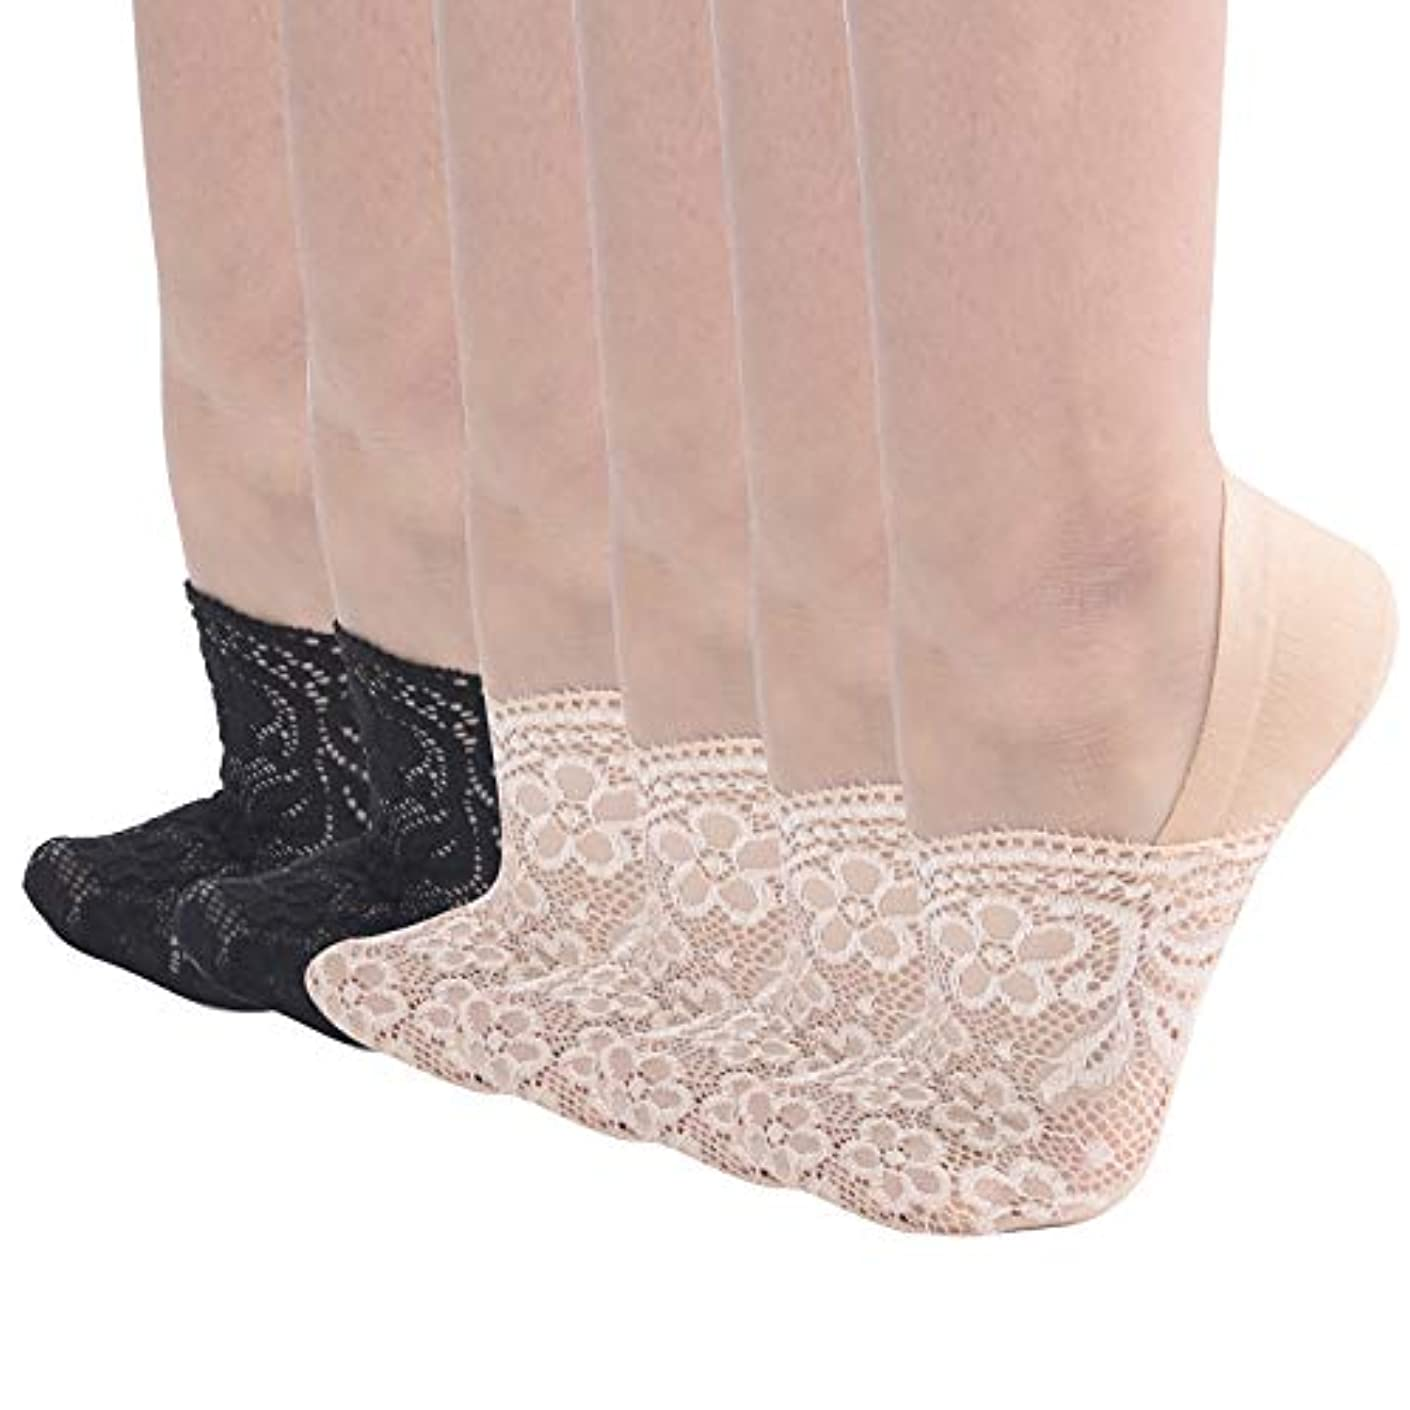 Soxbang Women's 6 Pairs Floral Lace No Show Socks Cotton Bottom Nonslip Heel Grip